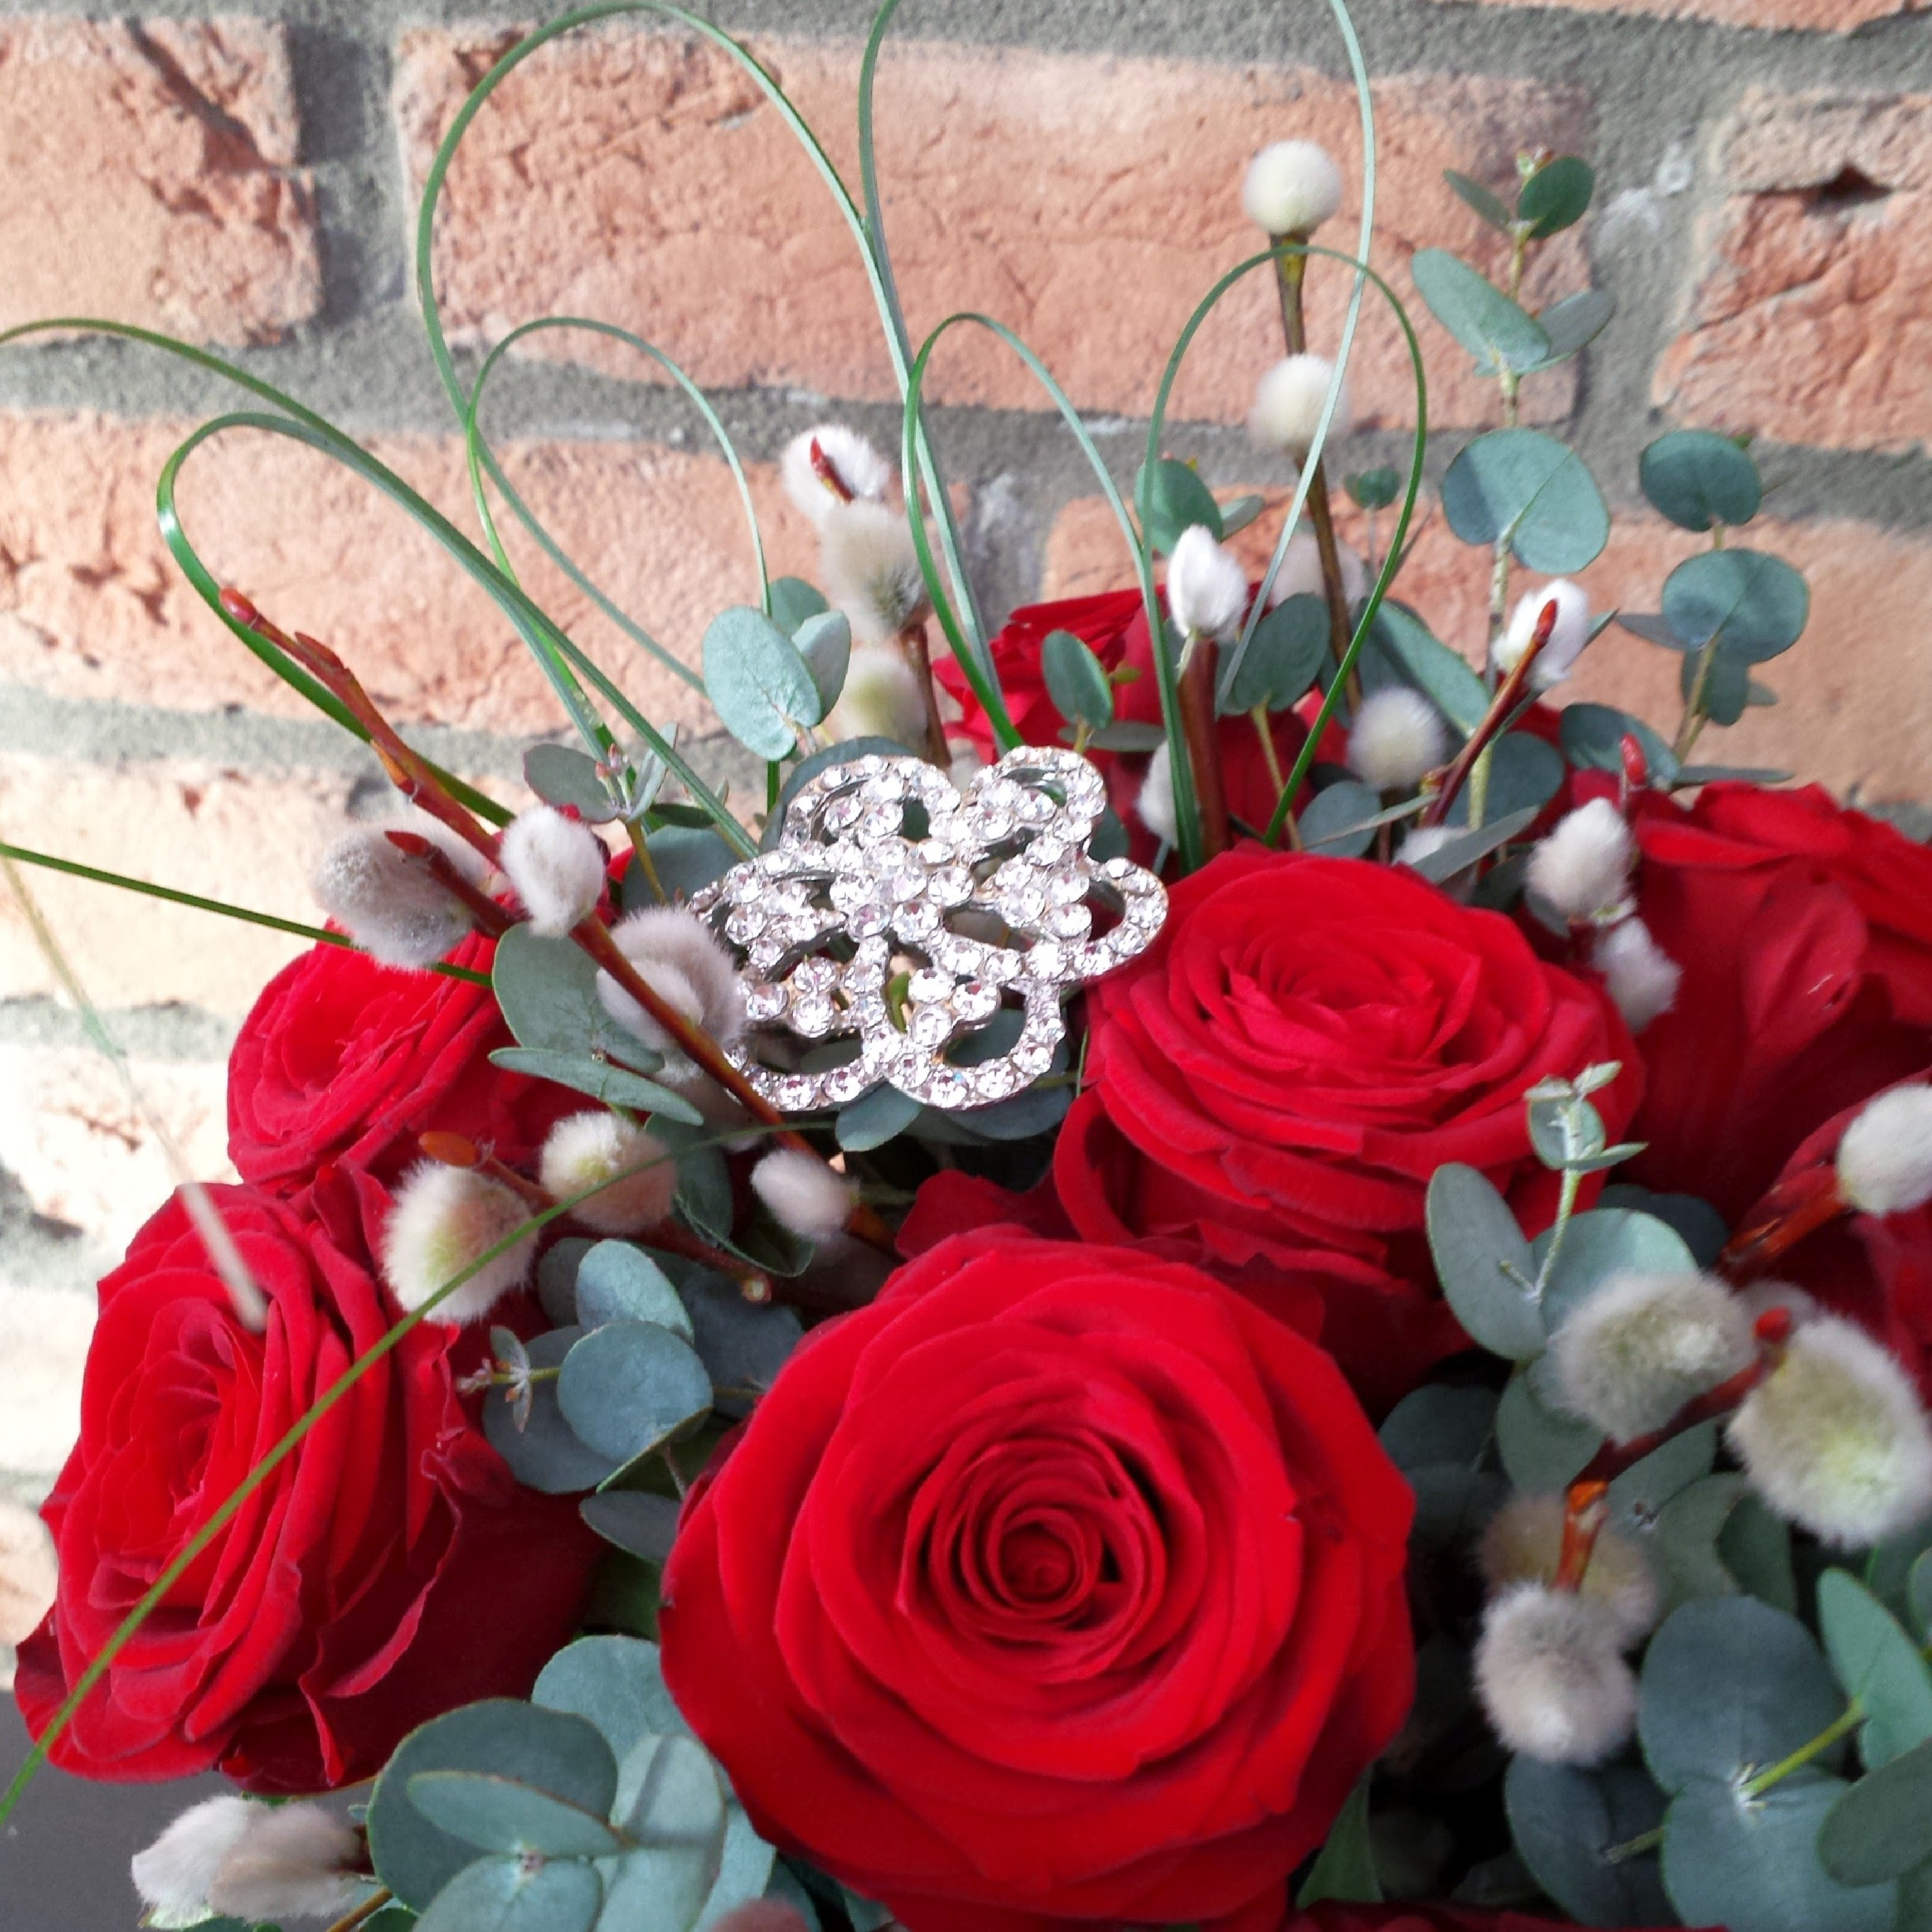 12 Red Roses for Valentine's Day